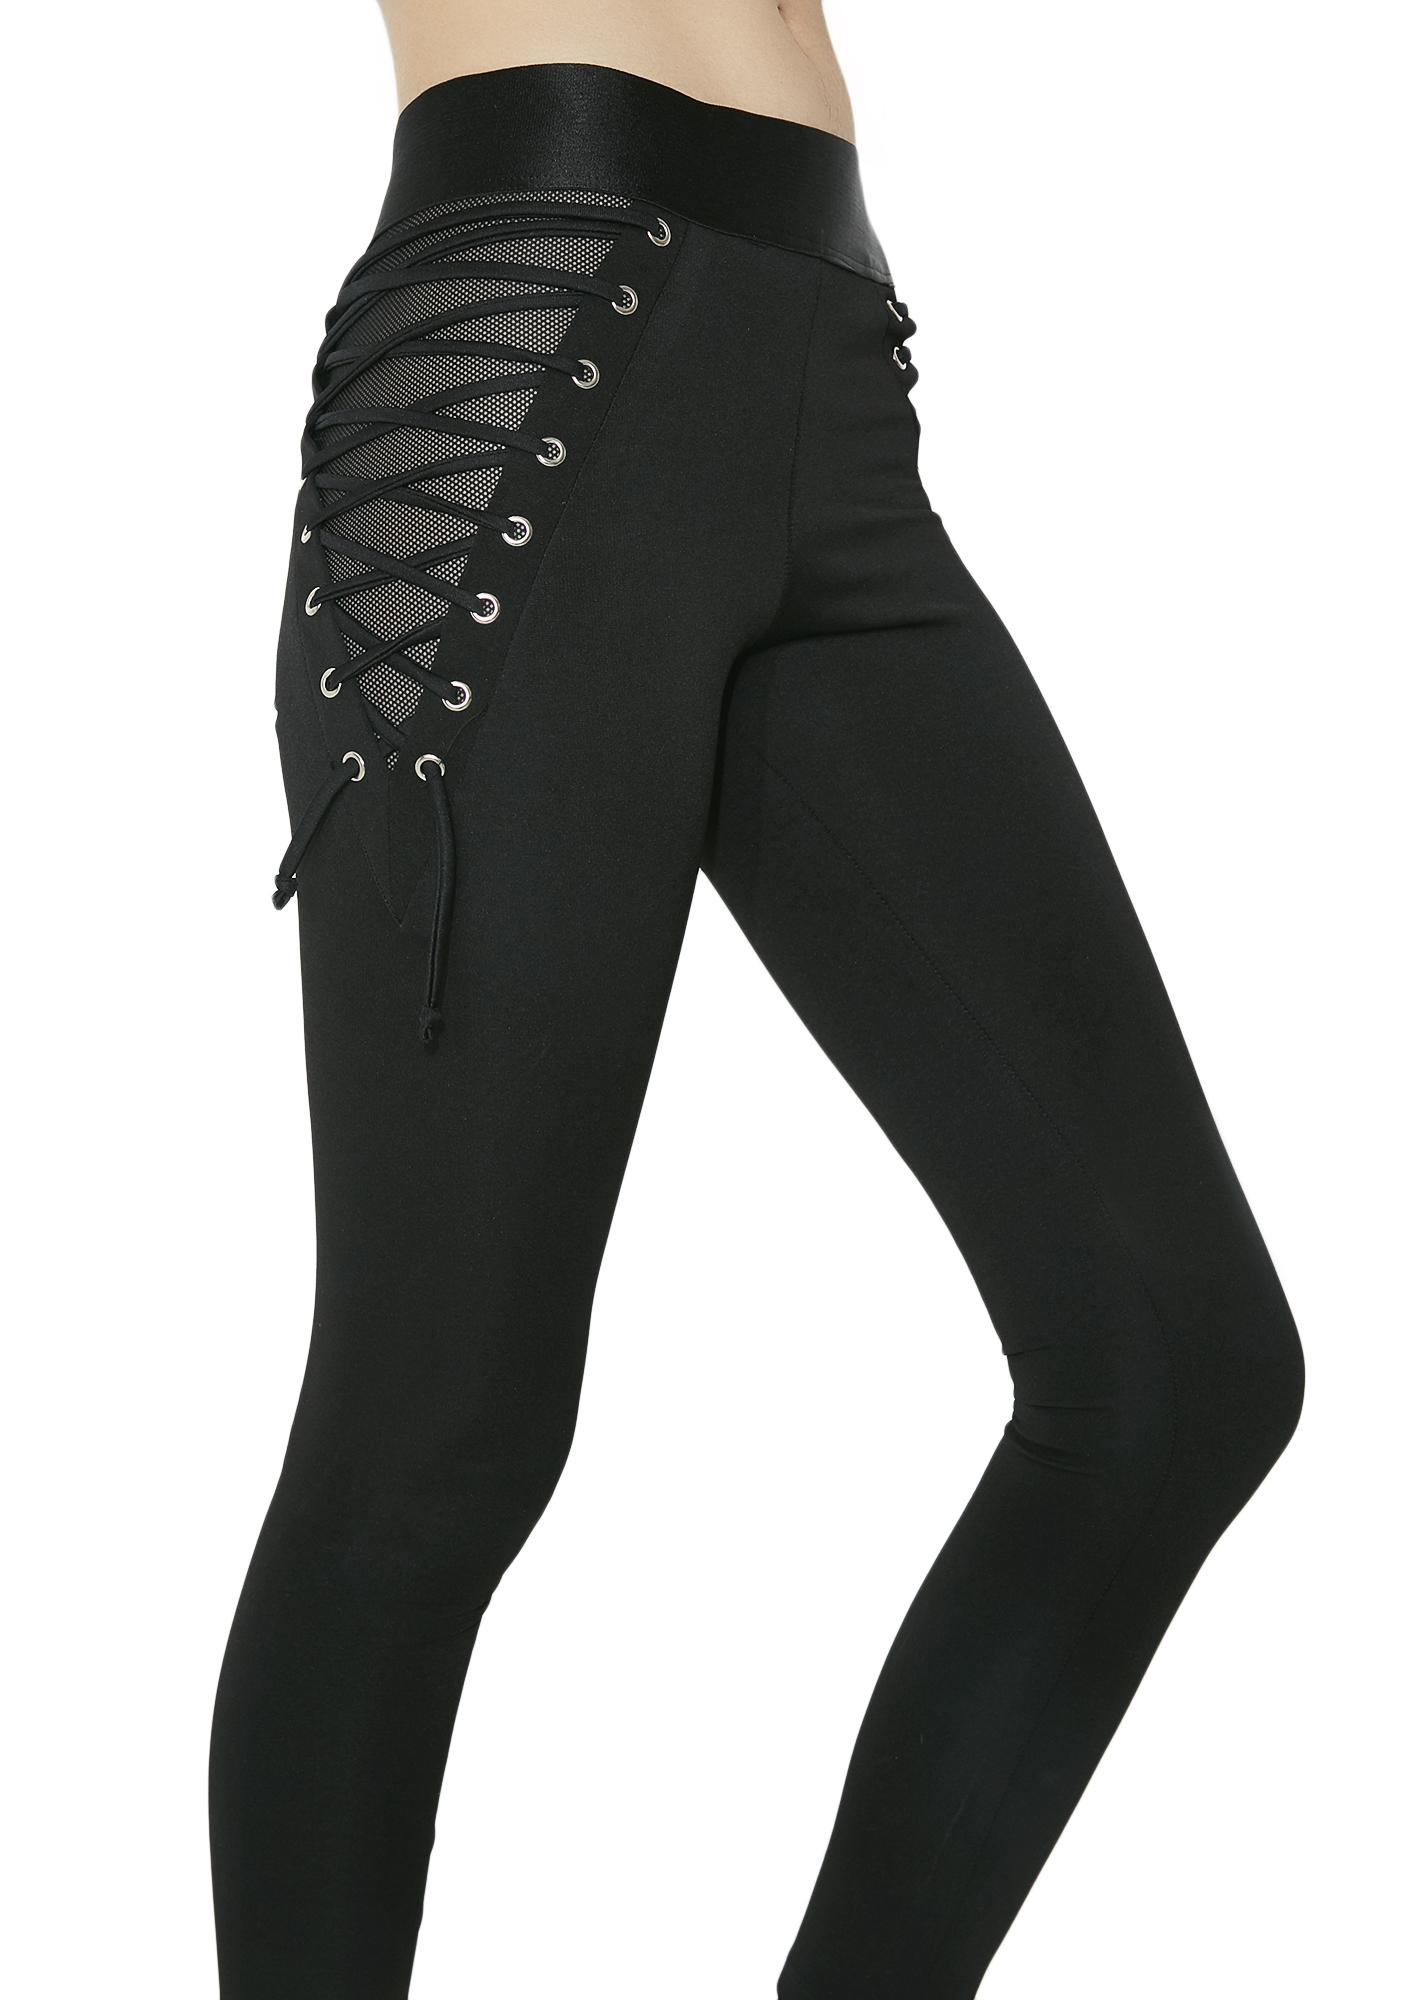 Agile Mobile Hostile Lace-Up Leggings